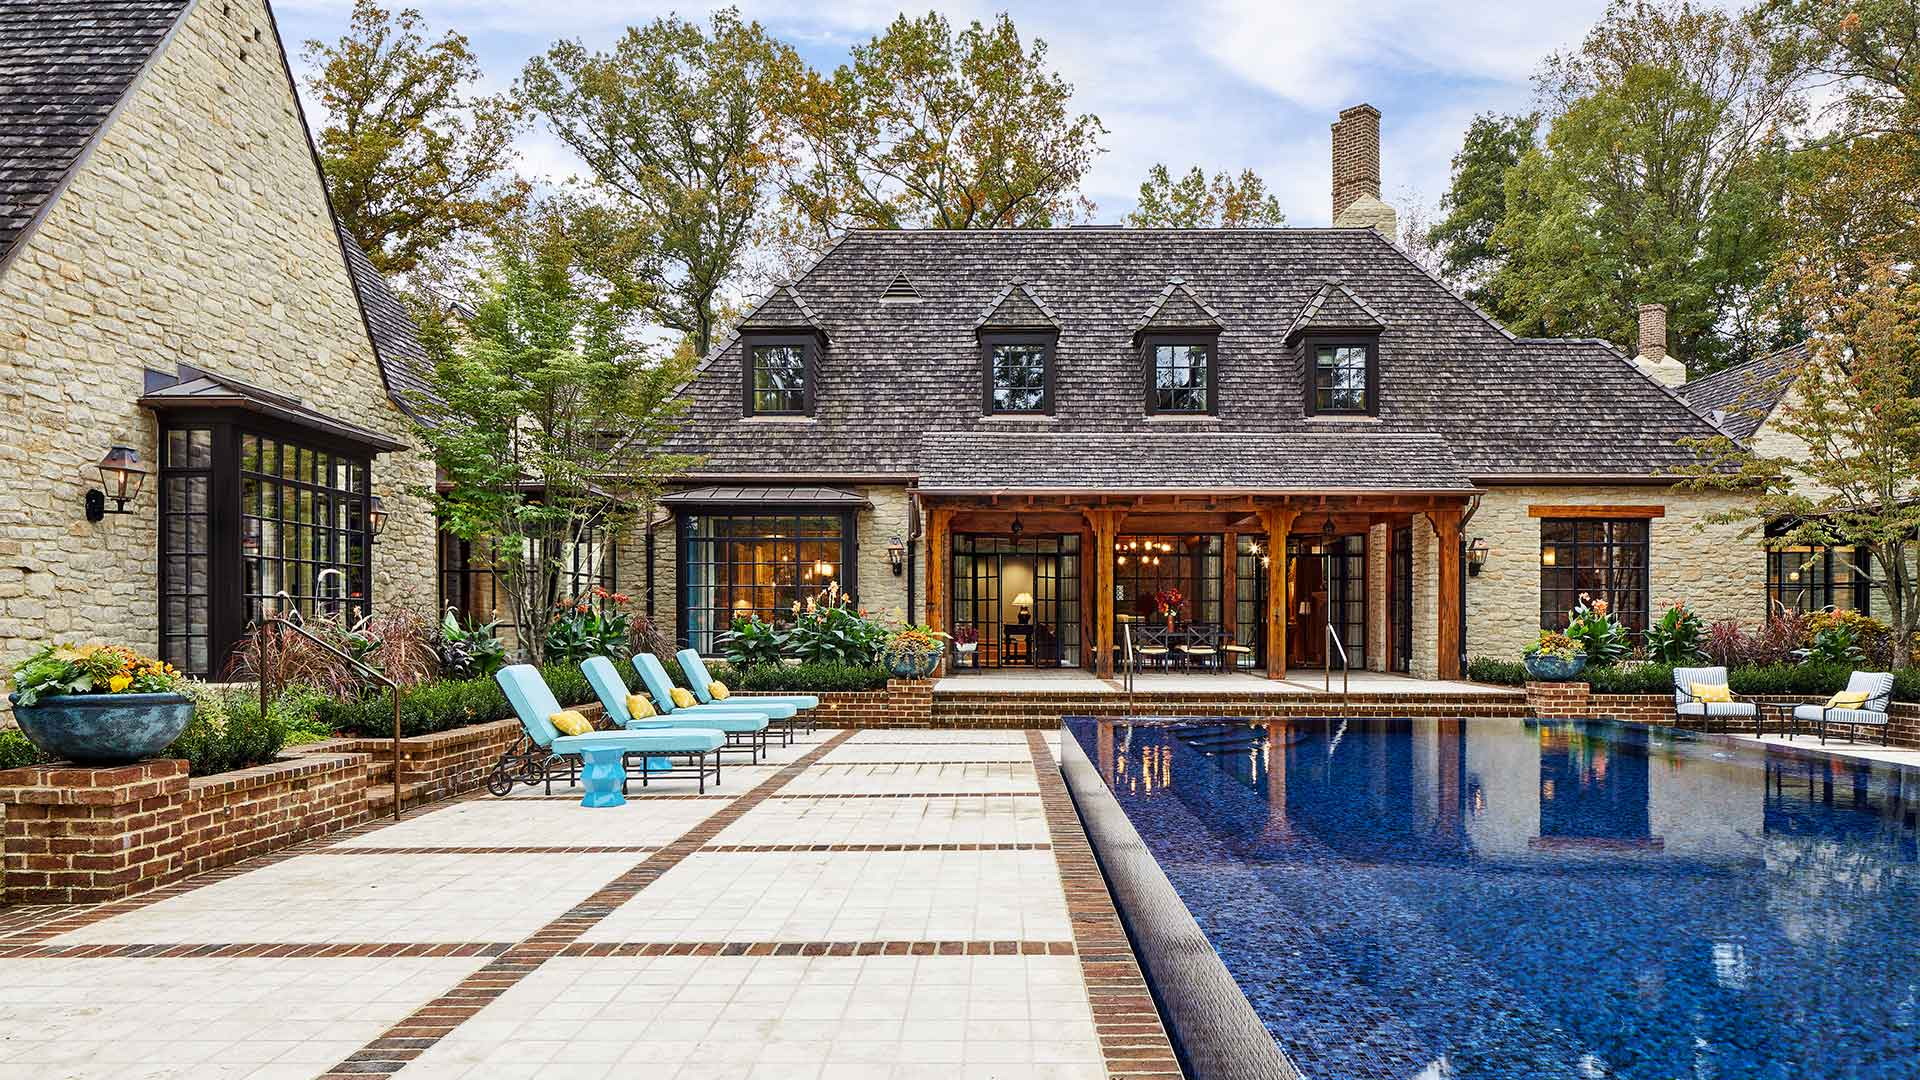 A fancy big house with a pool